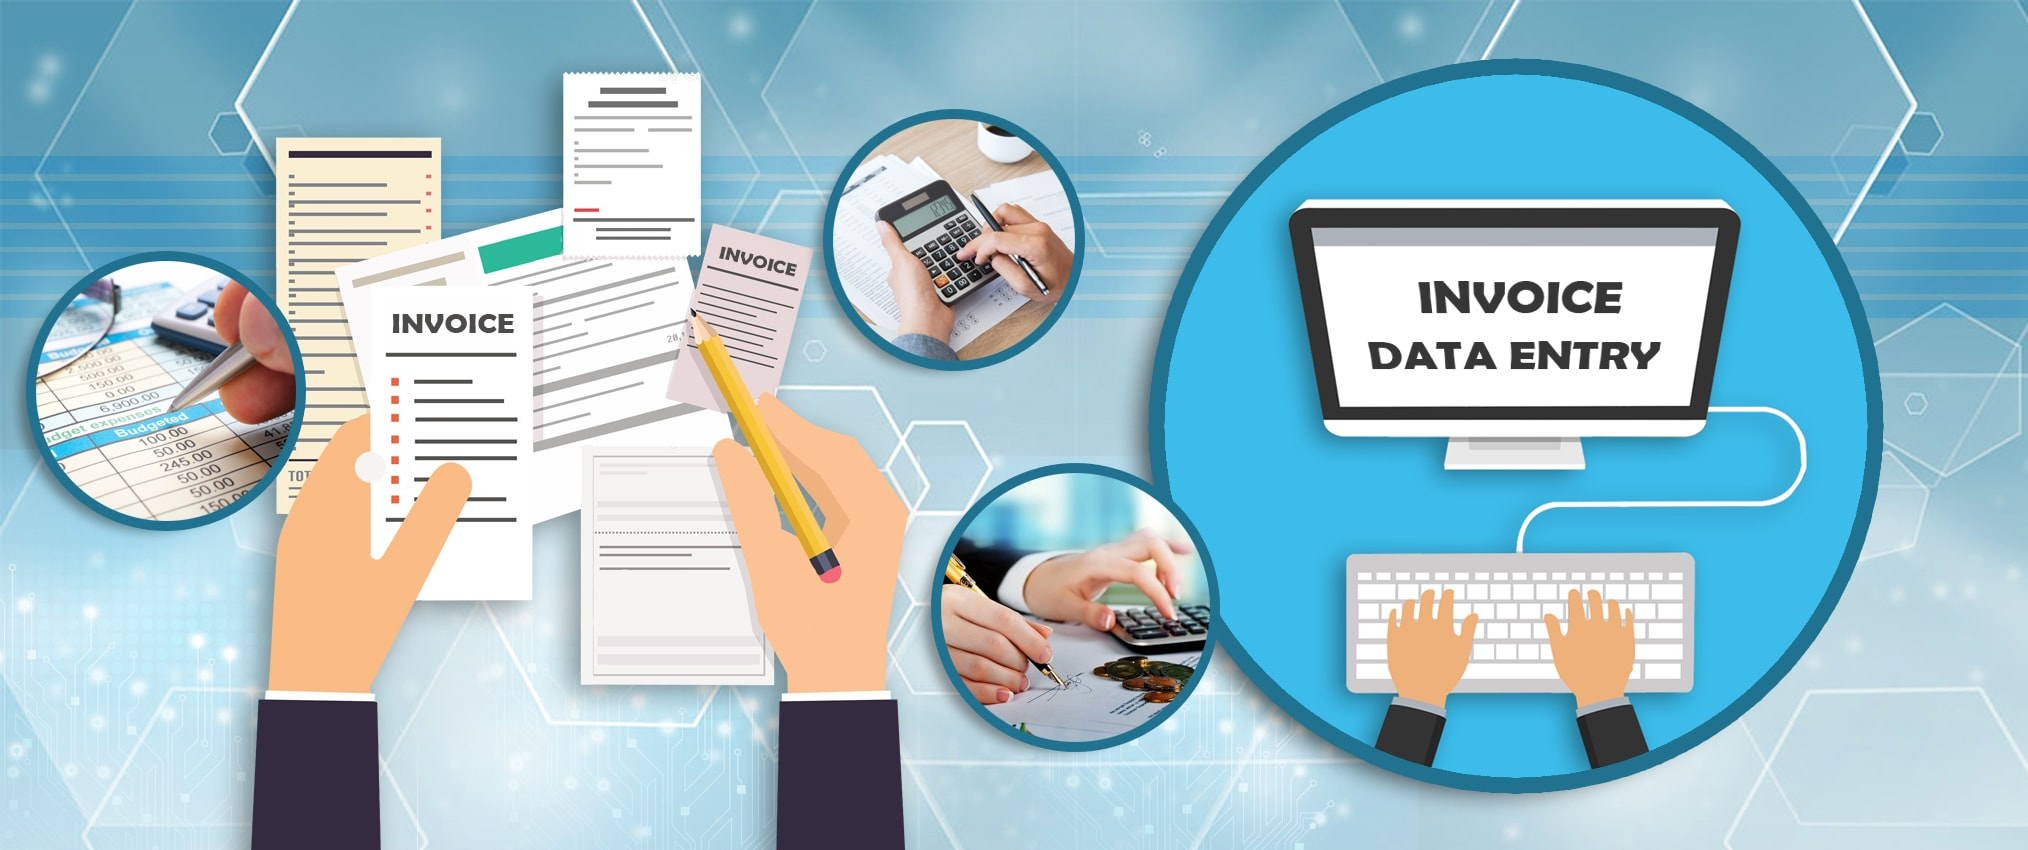 Vitality-of-Invoice-Data-Entry-Services-in-the-Accounting-World